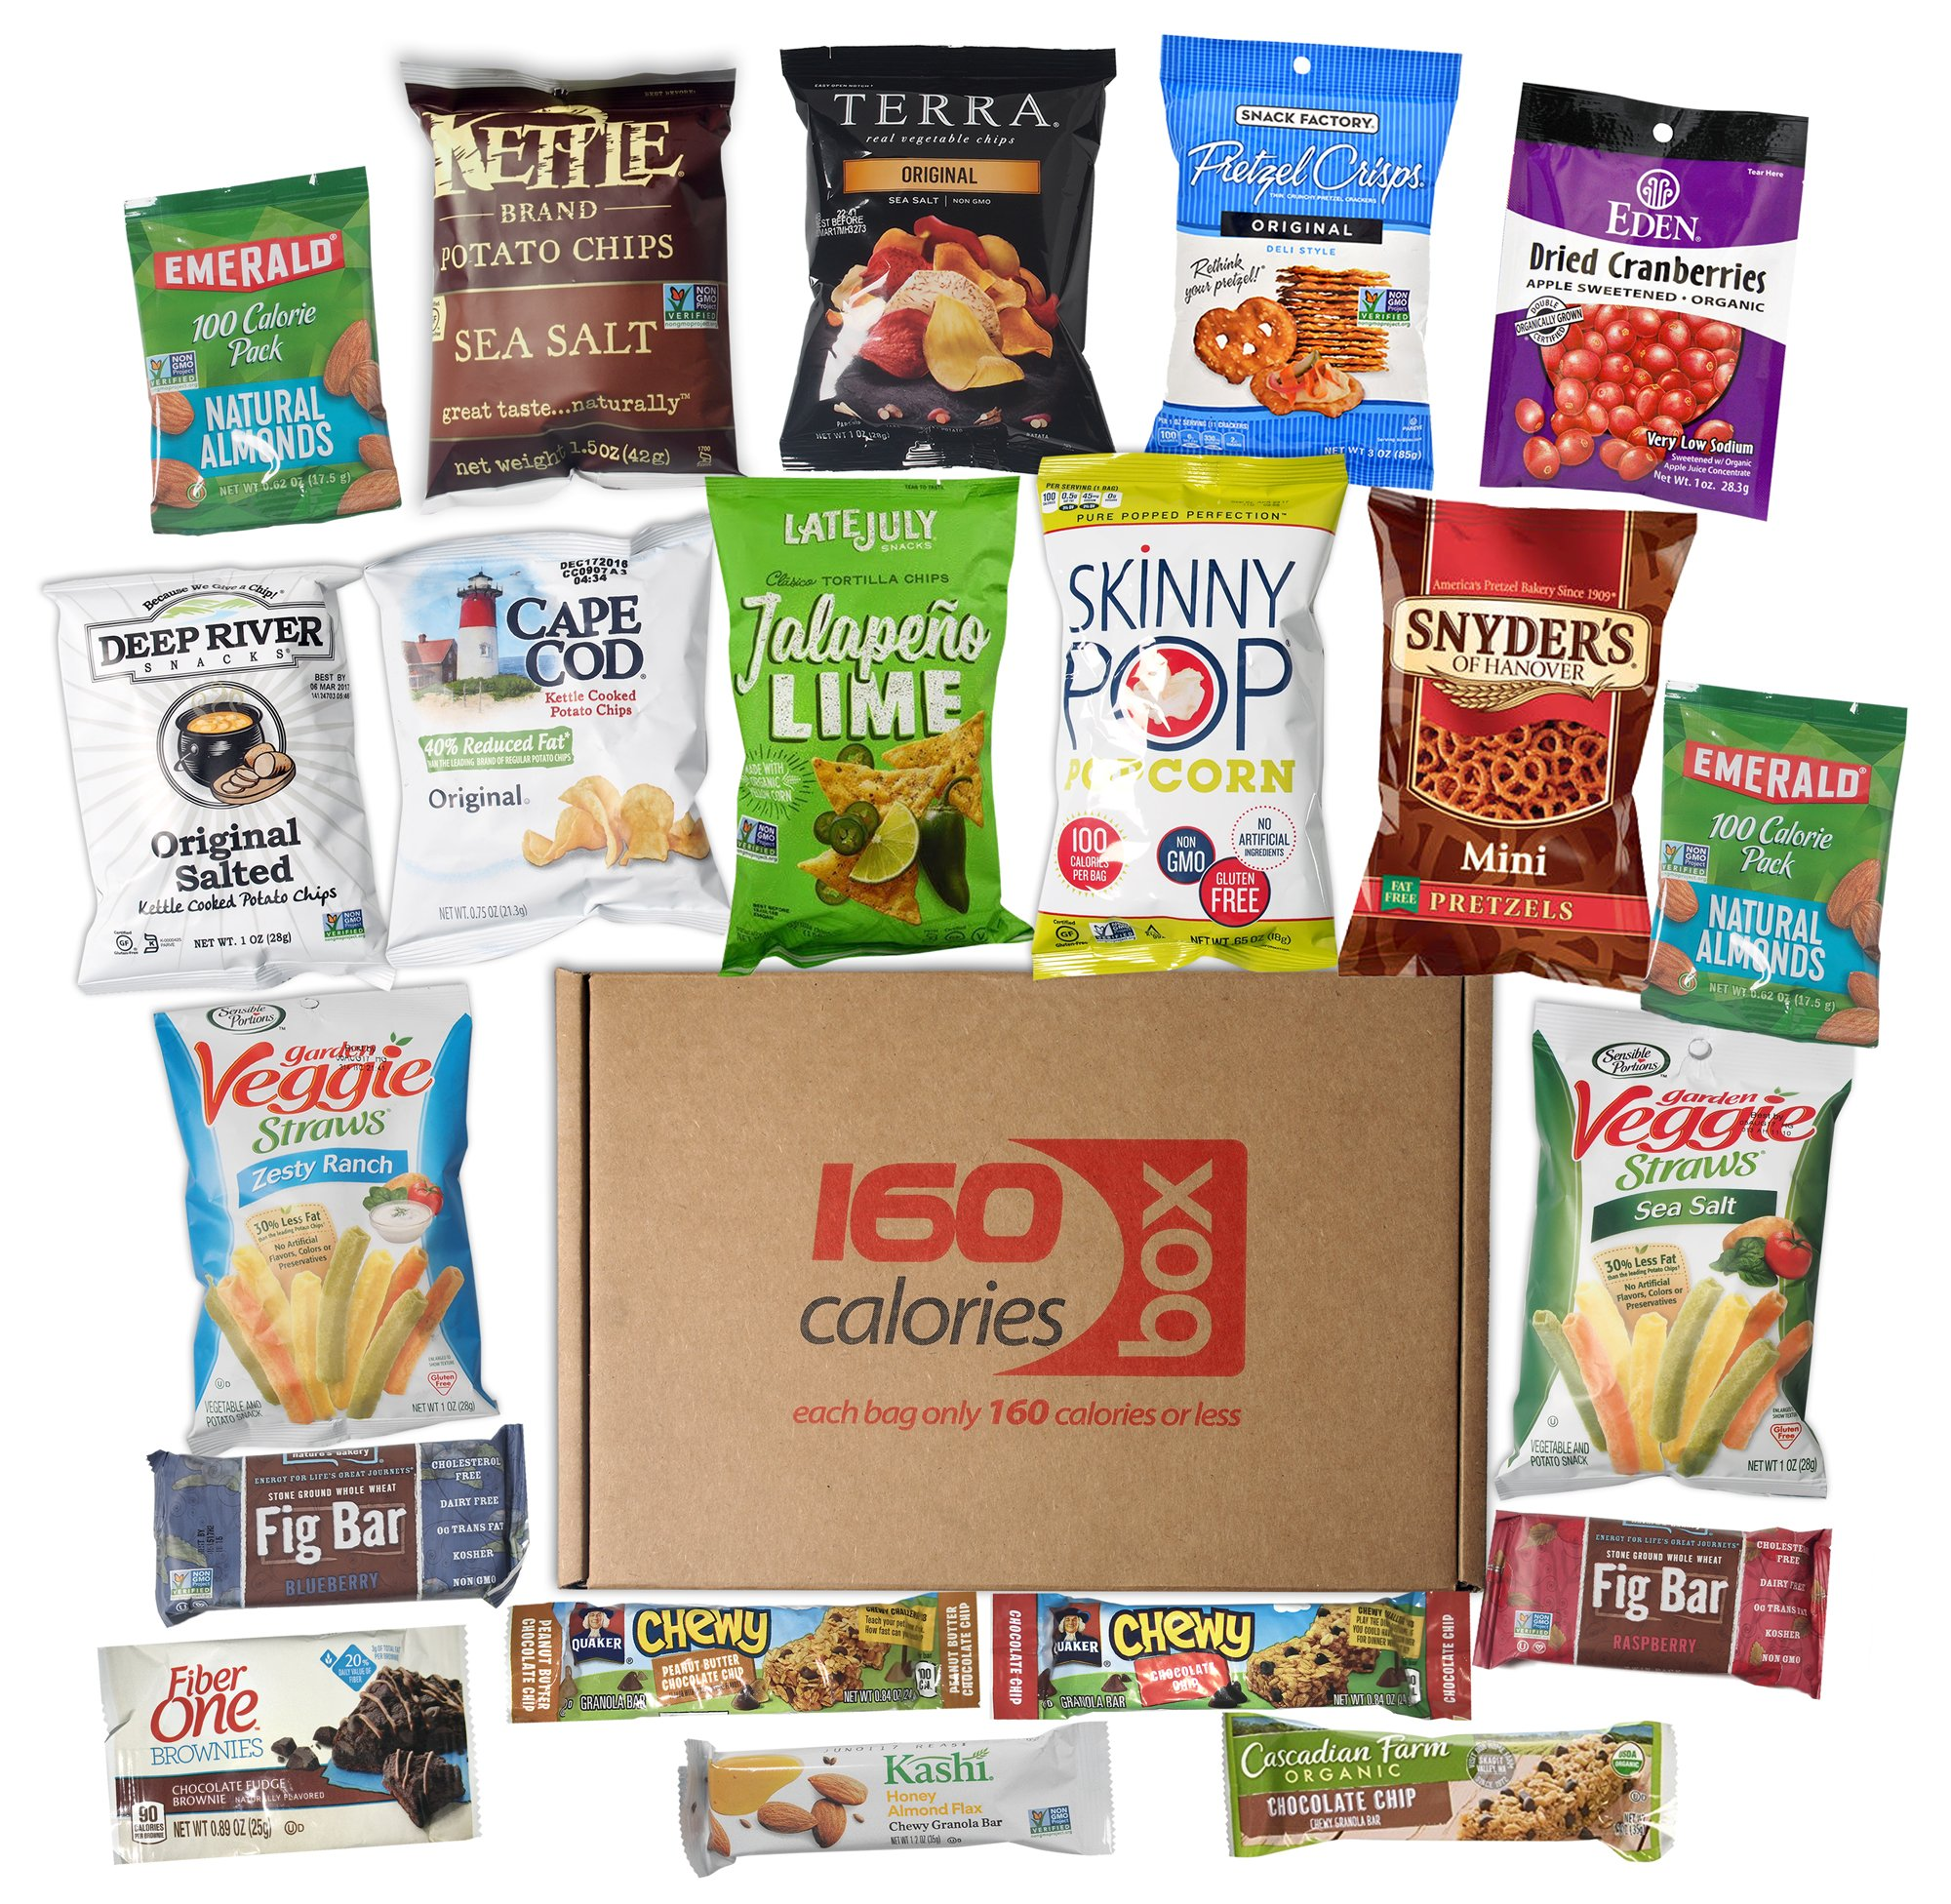 Kosher Healthy Snacks Care Package Under 160 Calories | Sweet & Nutritious Bars, Nuts, Potato Chips, Veggie Straws & Others | For School, Adults, Work, Parties & Diet (20 Count) by Calories Box